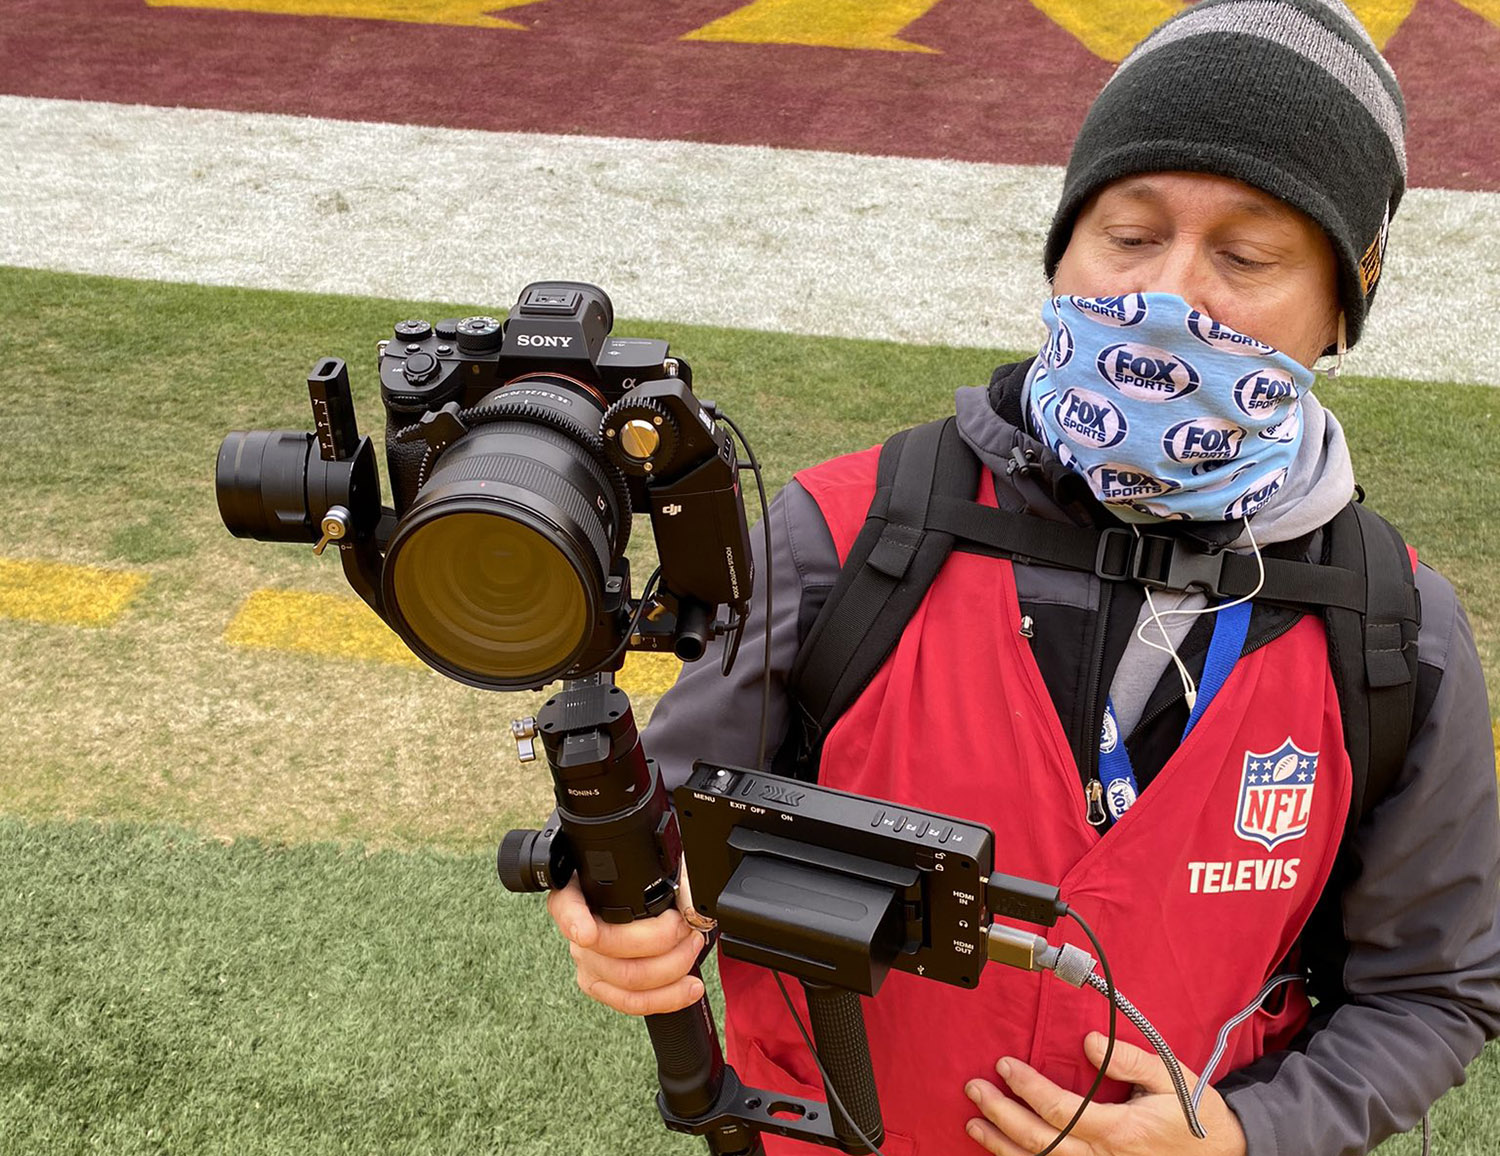 Fox Sports using Sony cameras to give football broadcasts a cinematic look | Engadget